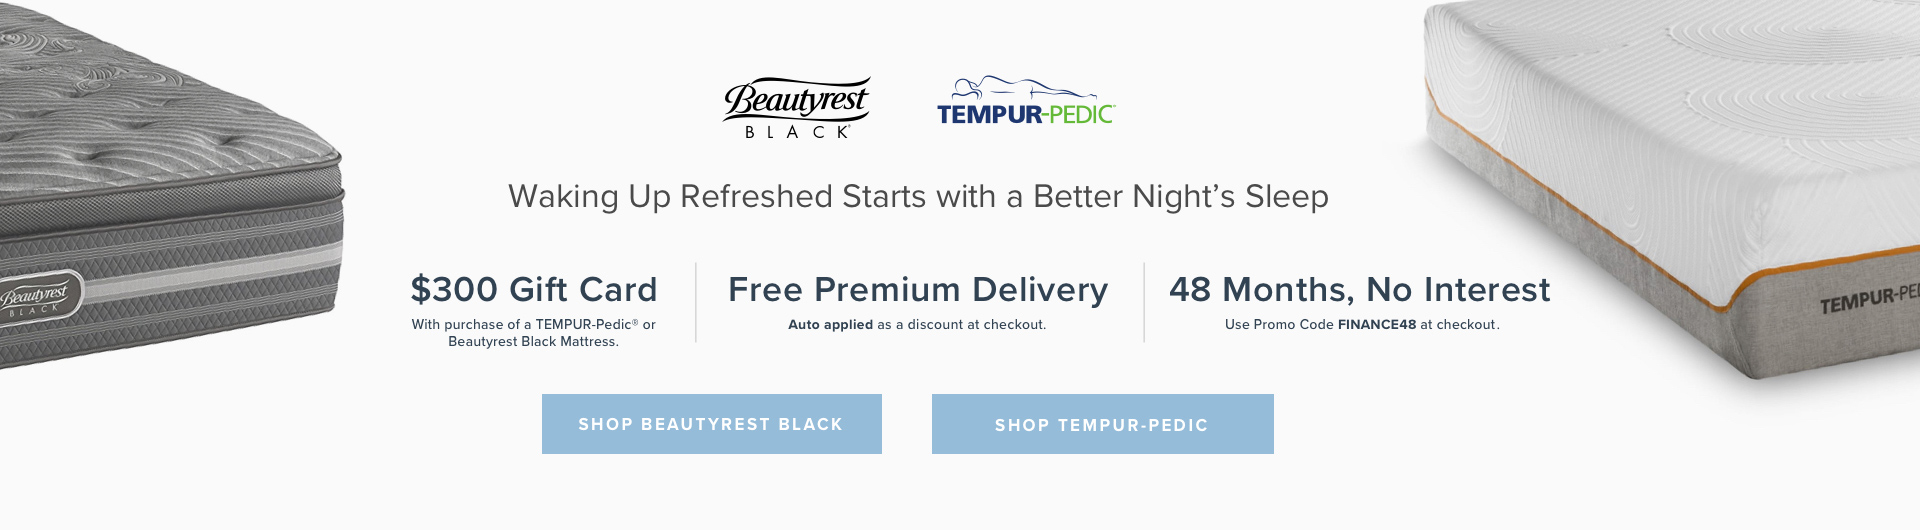 Beautyrest. TEMPUR-Pedic®. Waking Up Refreshed Starts with a Better Nights Sleep. $300 Gift Card with purchase of a TEMPUR-Pedic® or Beautyrest Black Mattress. Free Premium Delivery $59.99 Value. Applied as a discount at checkout. 48 Months, No Interest use promo code FINANCE48 checkout.. Shop Beautyrest Black. Shop Tempur-Pedic.